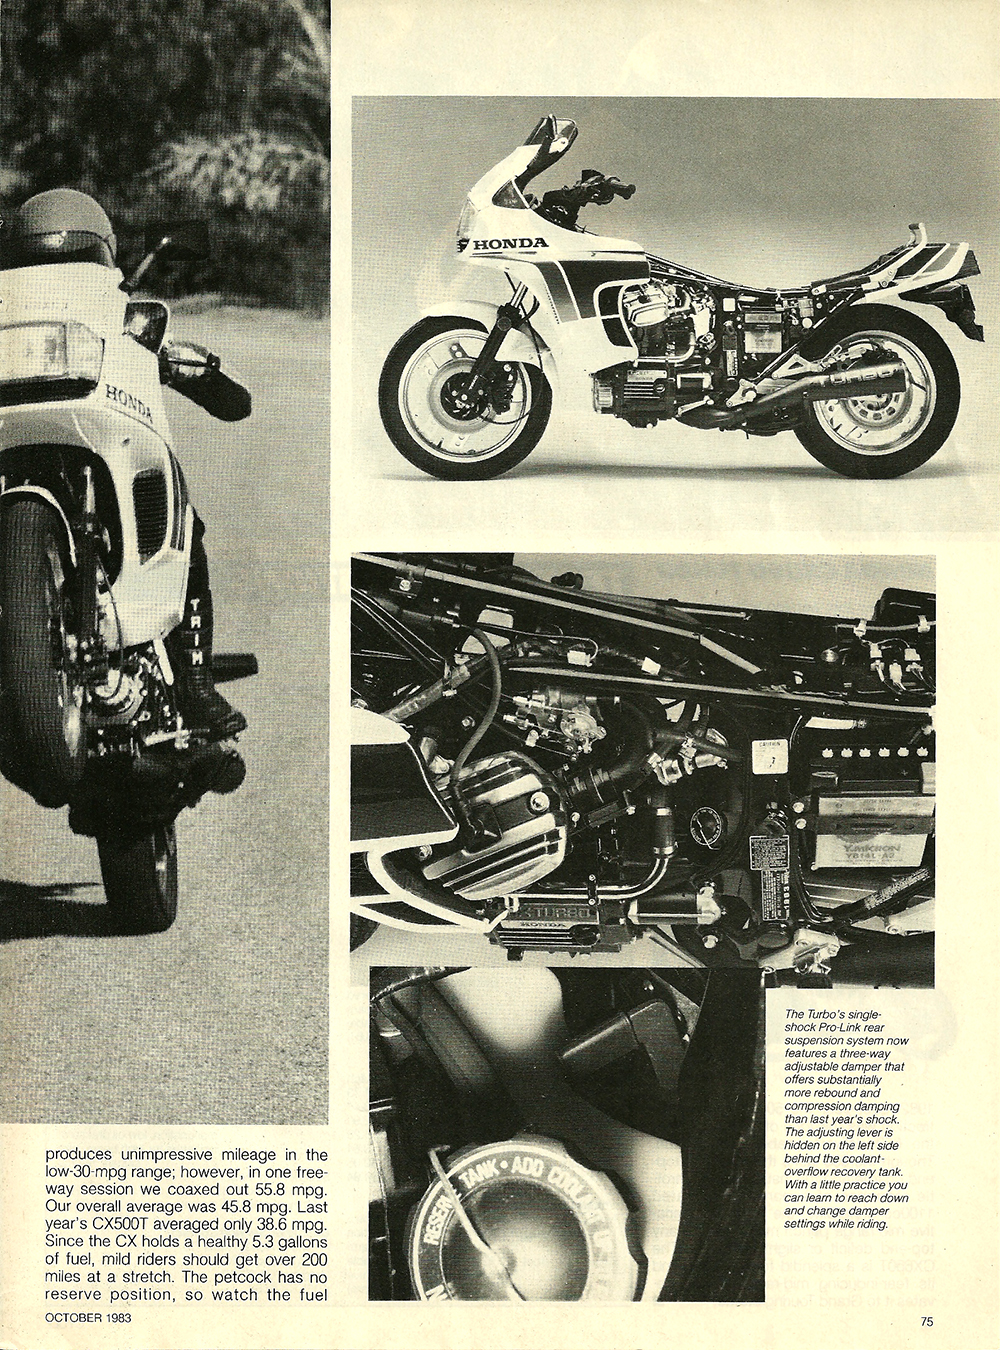 1983 Honda CX650 turbo road test 6.jpg